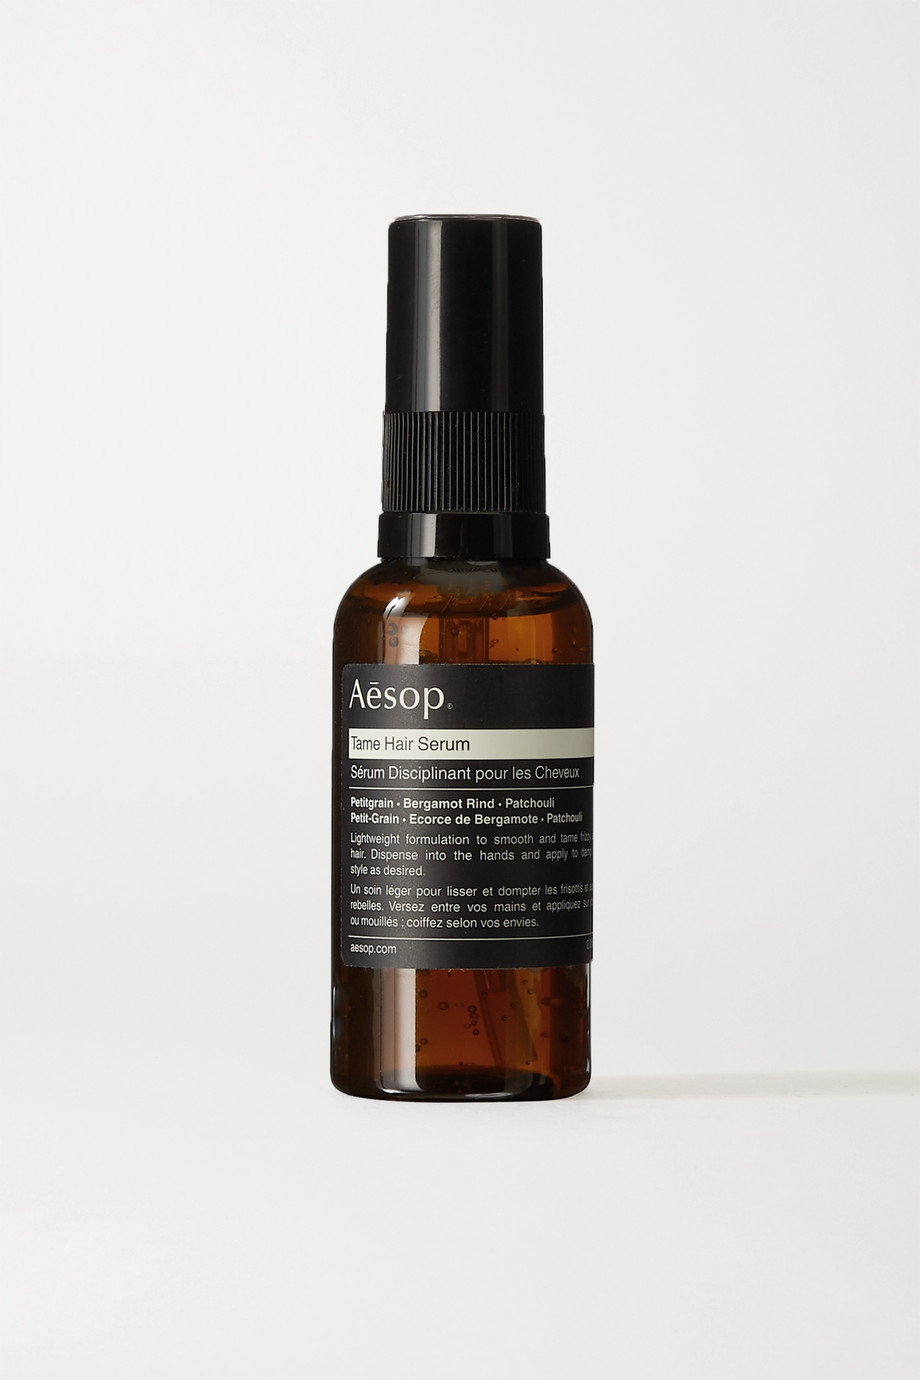 AESOP Tame Hair Serum, 60ml